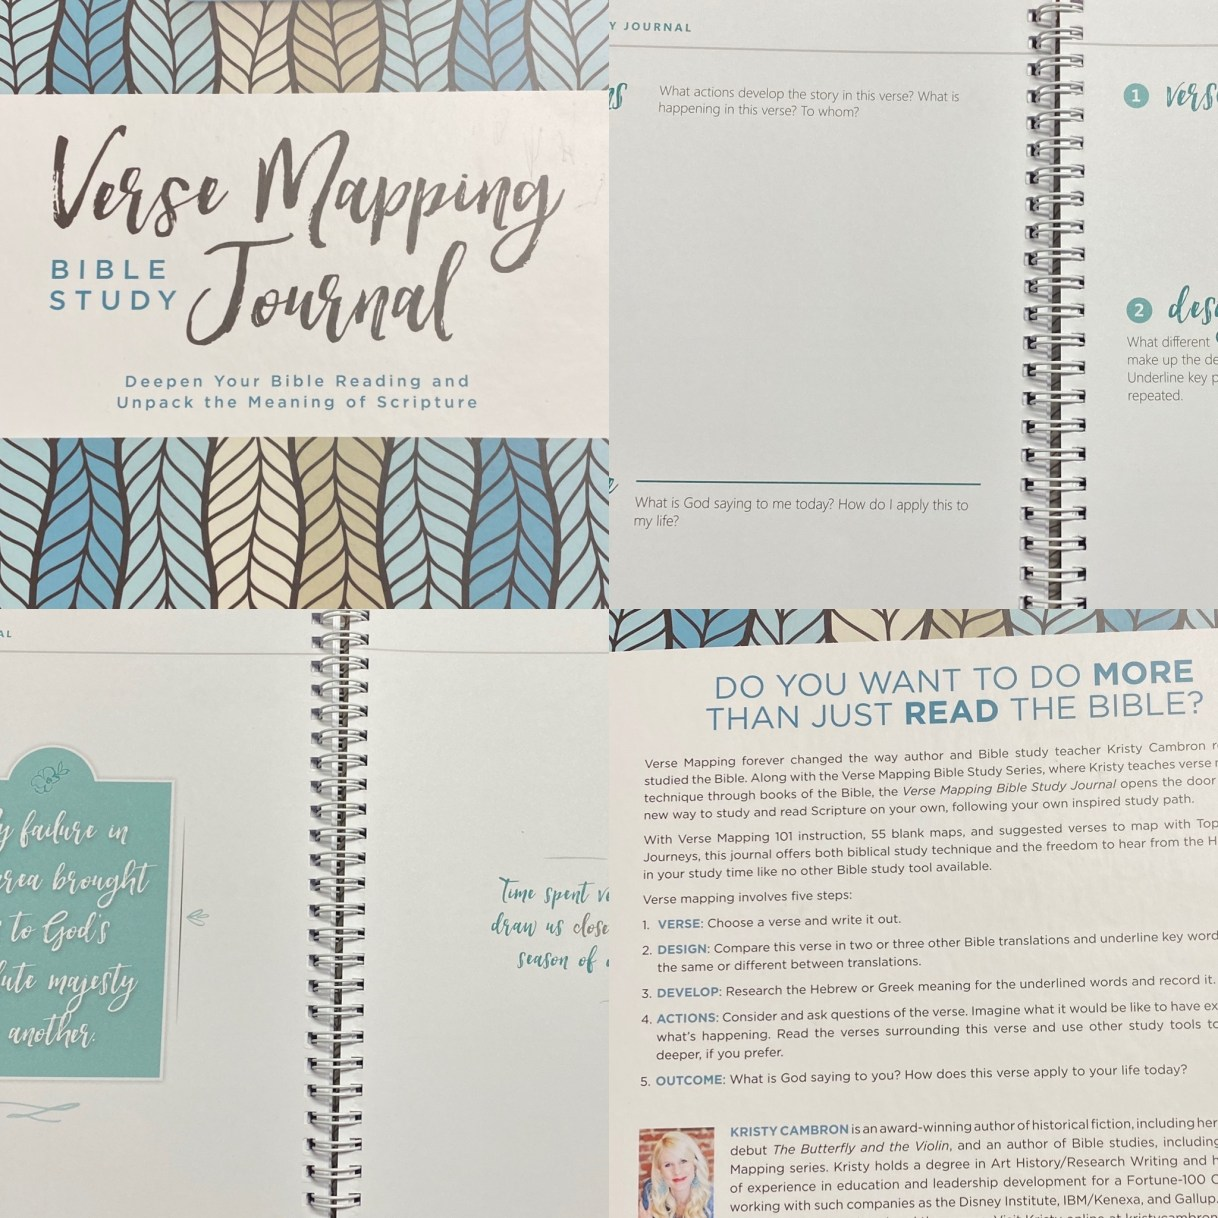 Verse Mapping Journal